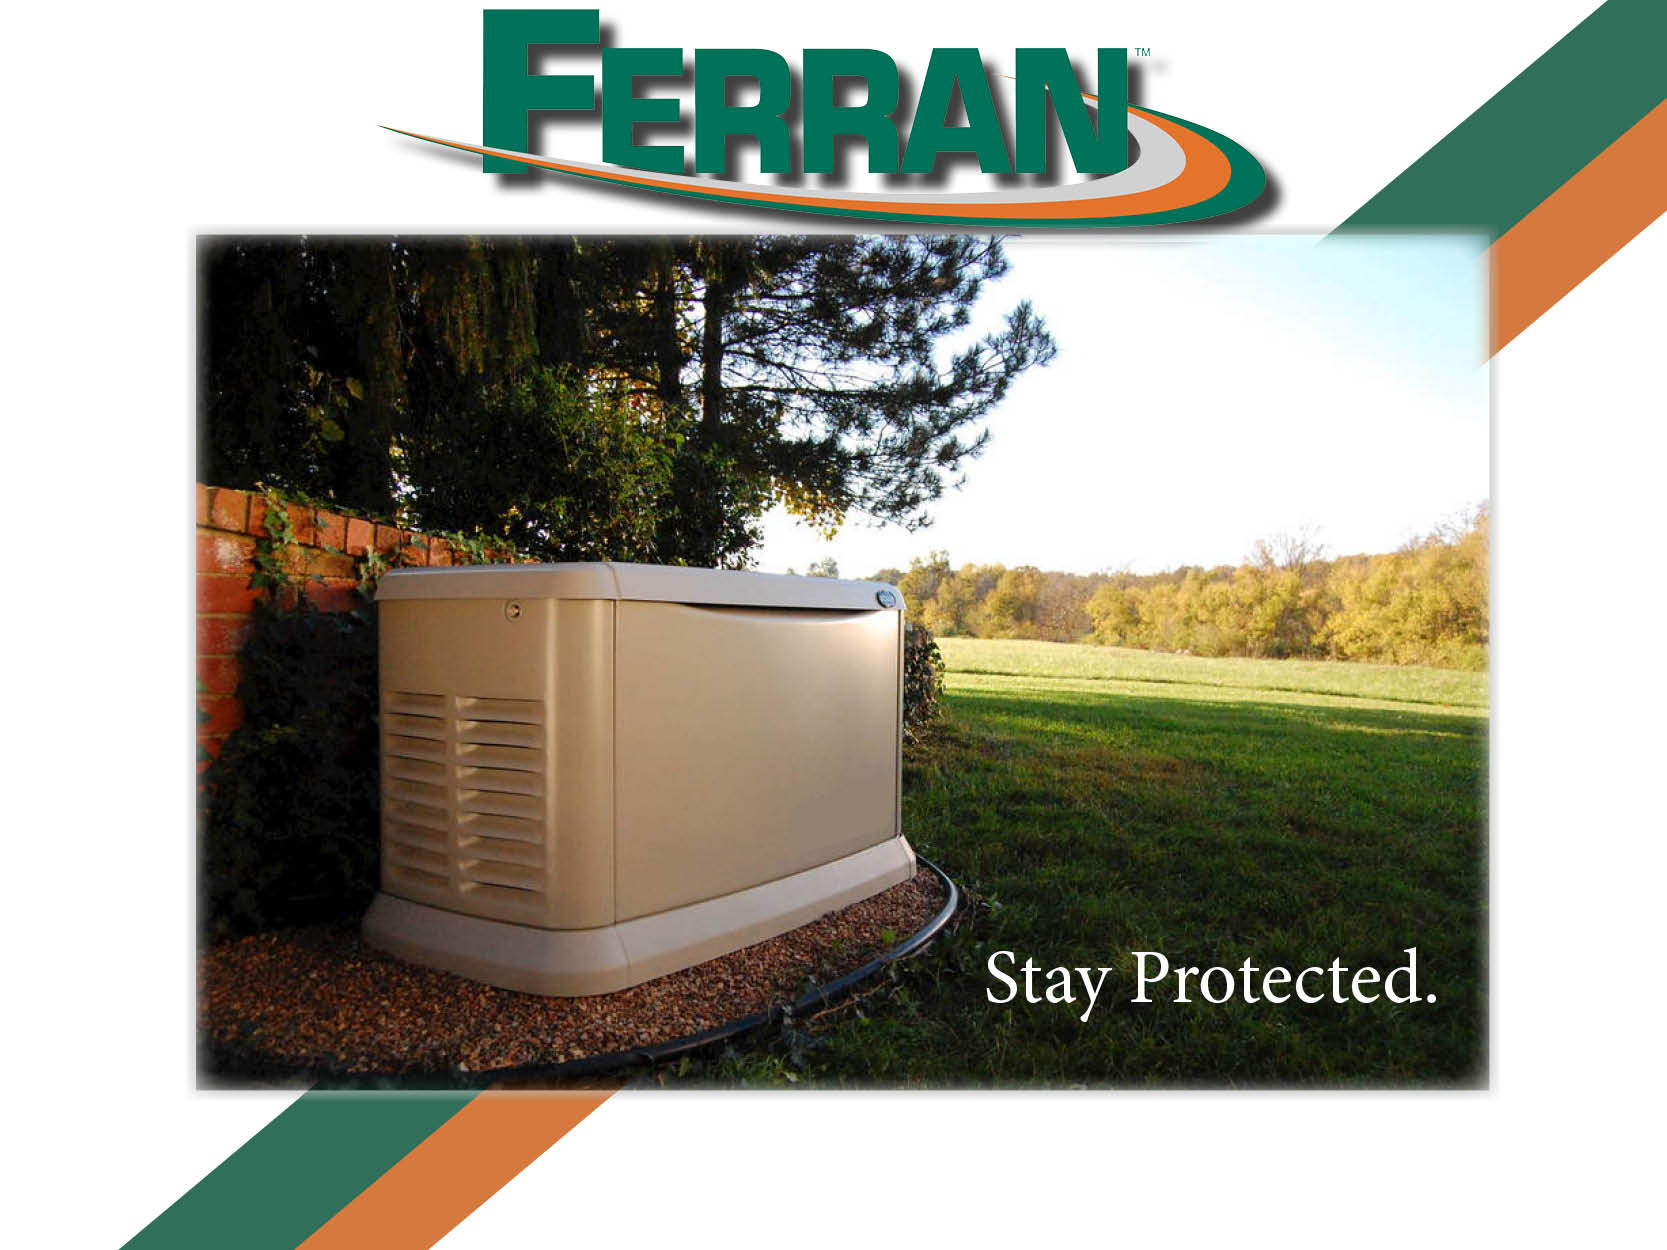 Ferran - Stay Protected